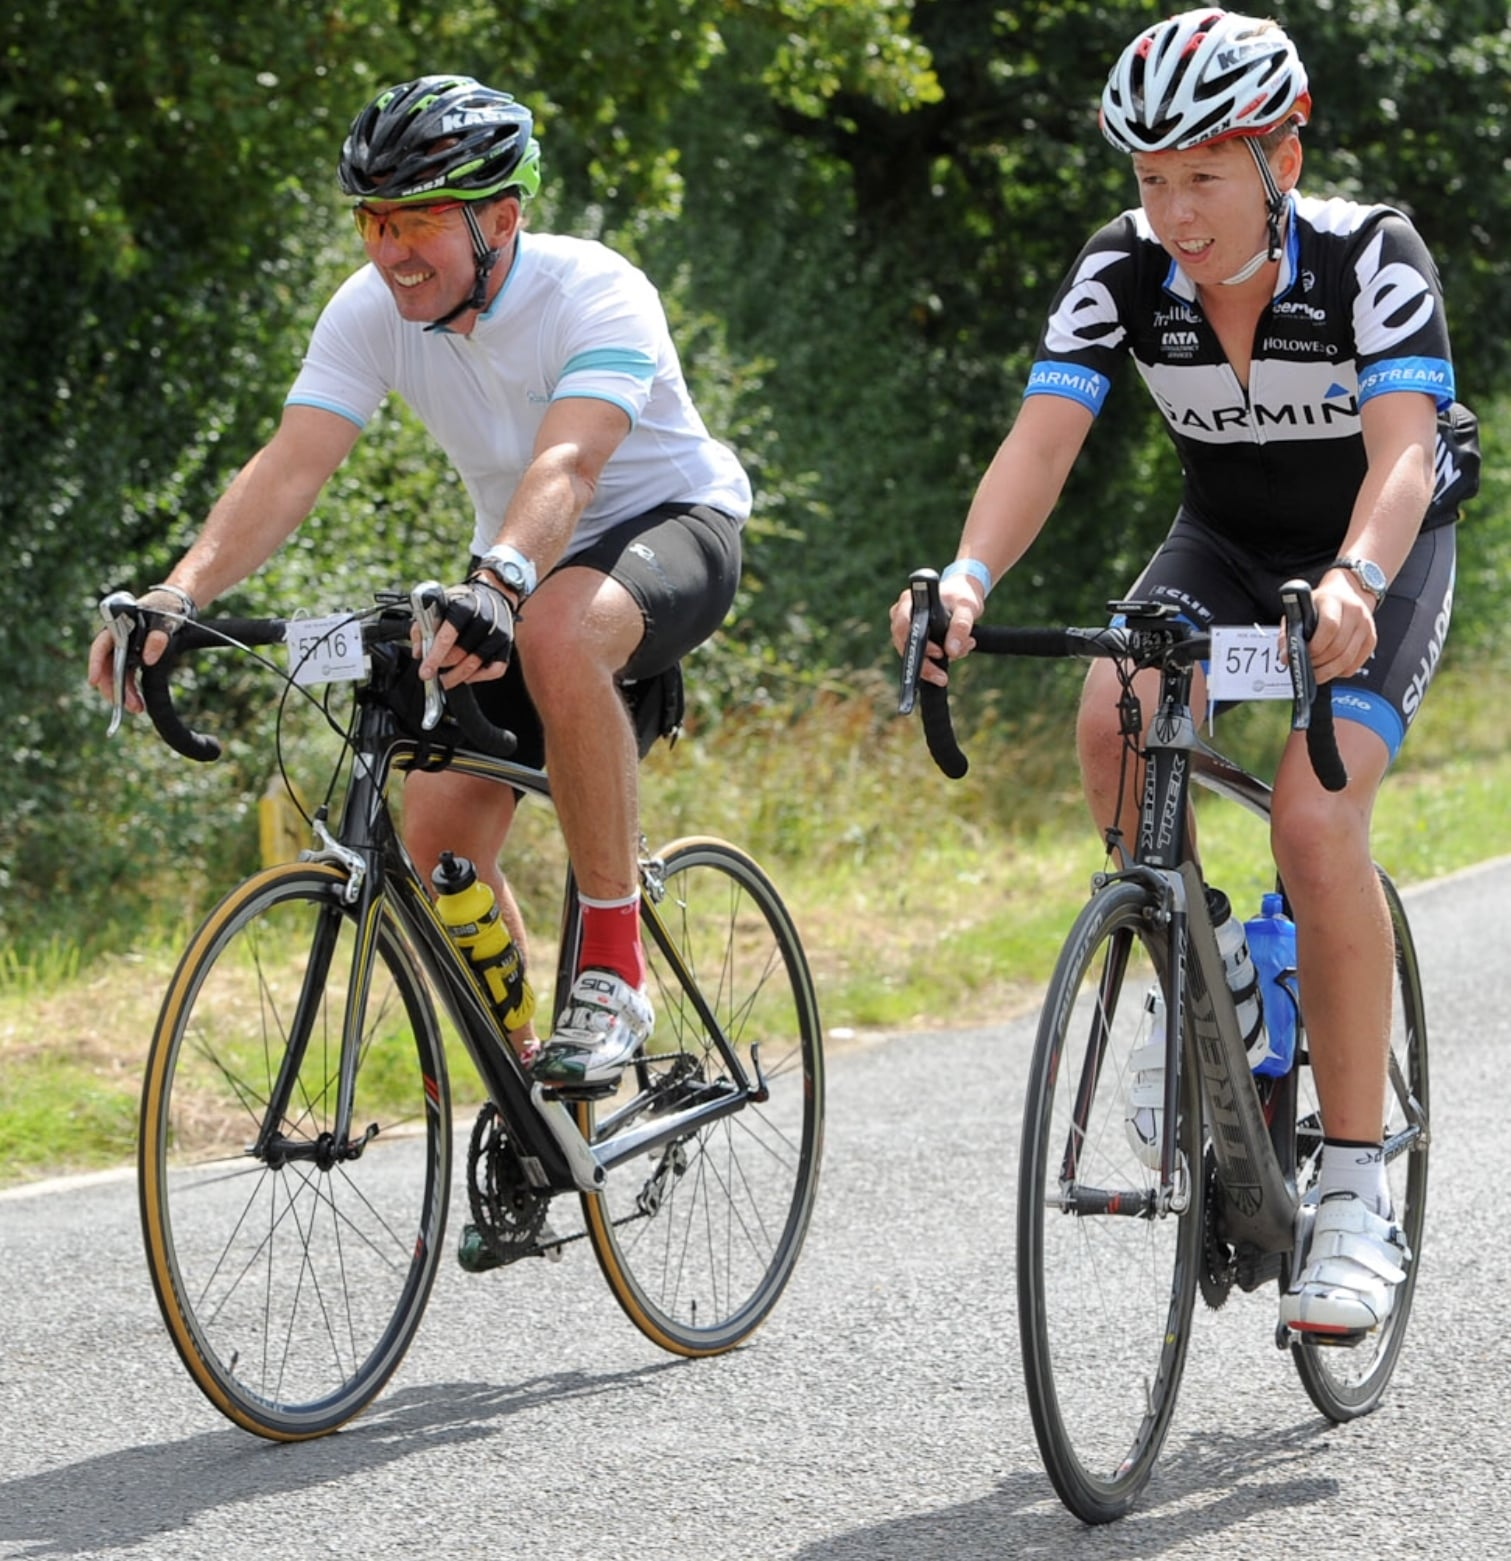 Chris Middleton riding a sportive with his son Harry now on the original Trek bike